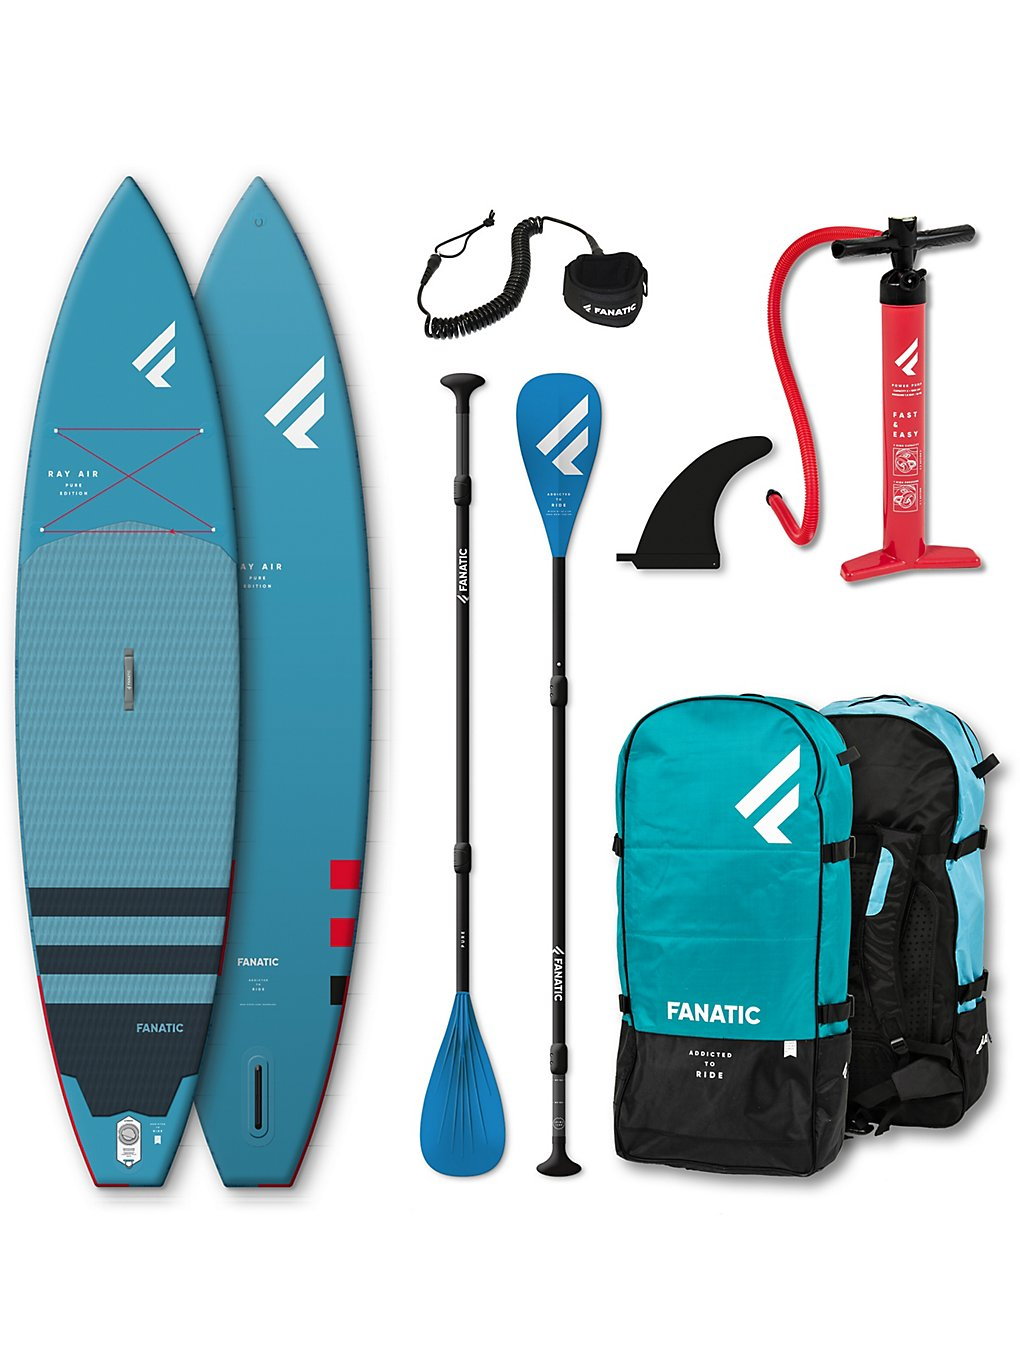 Fanatic Ray Air Package 12.6 SUP Board green